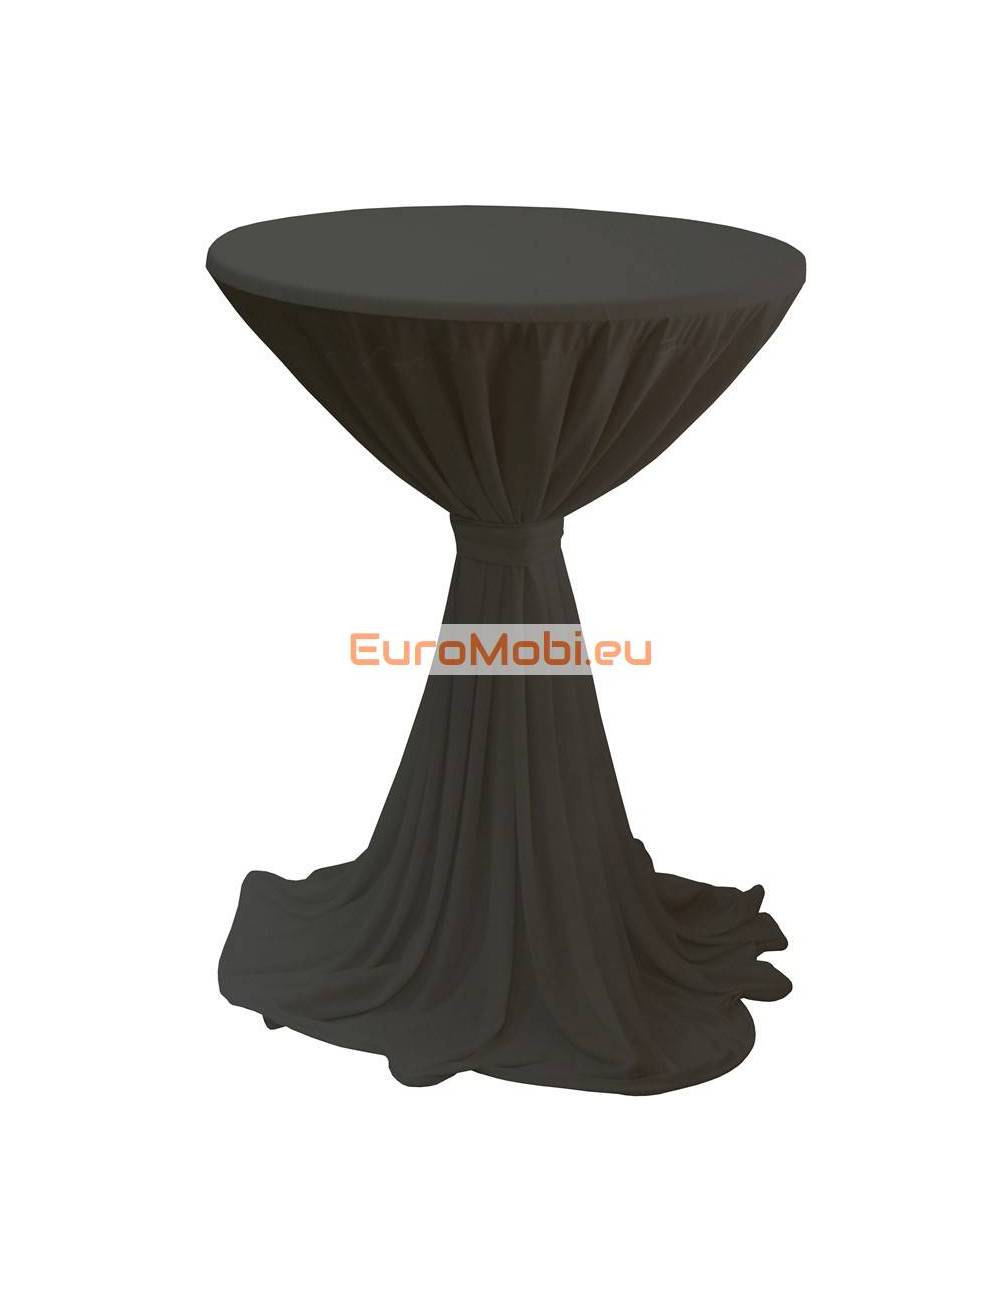 Porto cover and top stretch for standing table round black